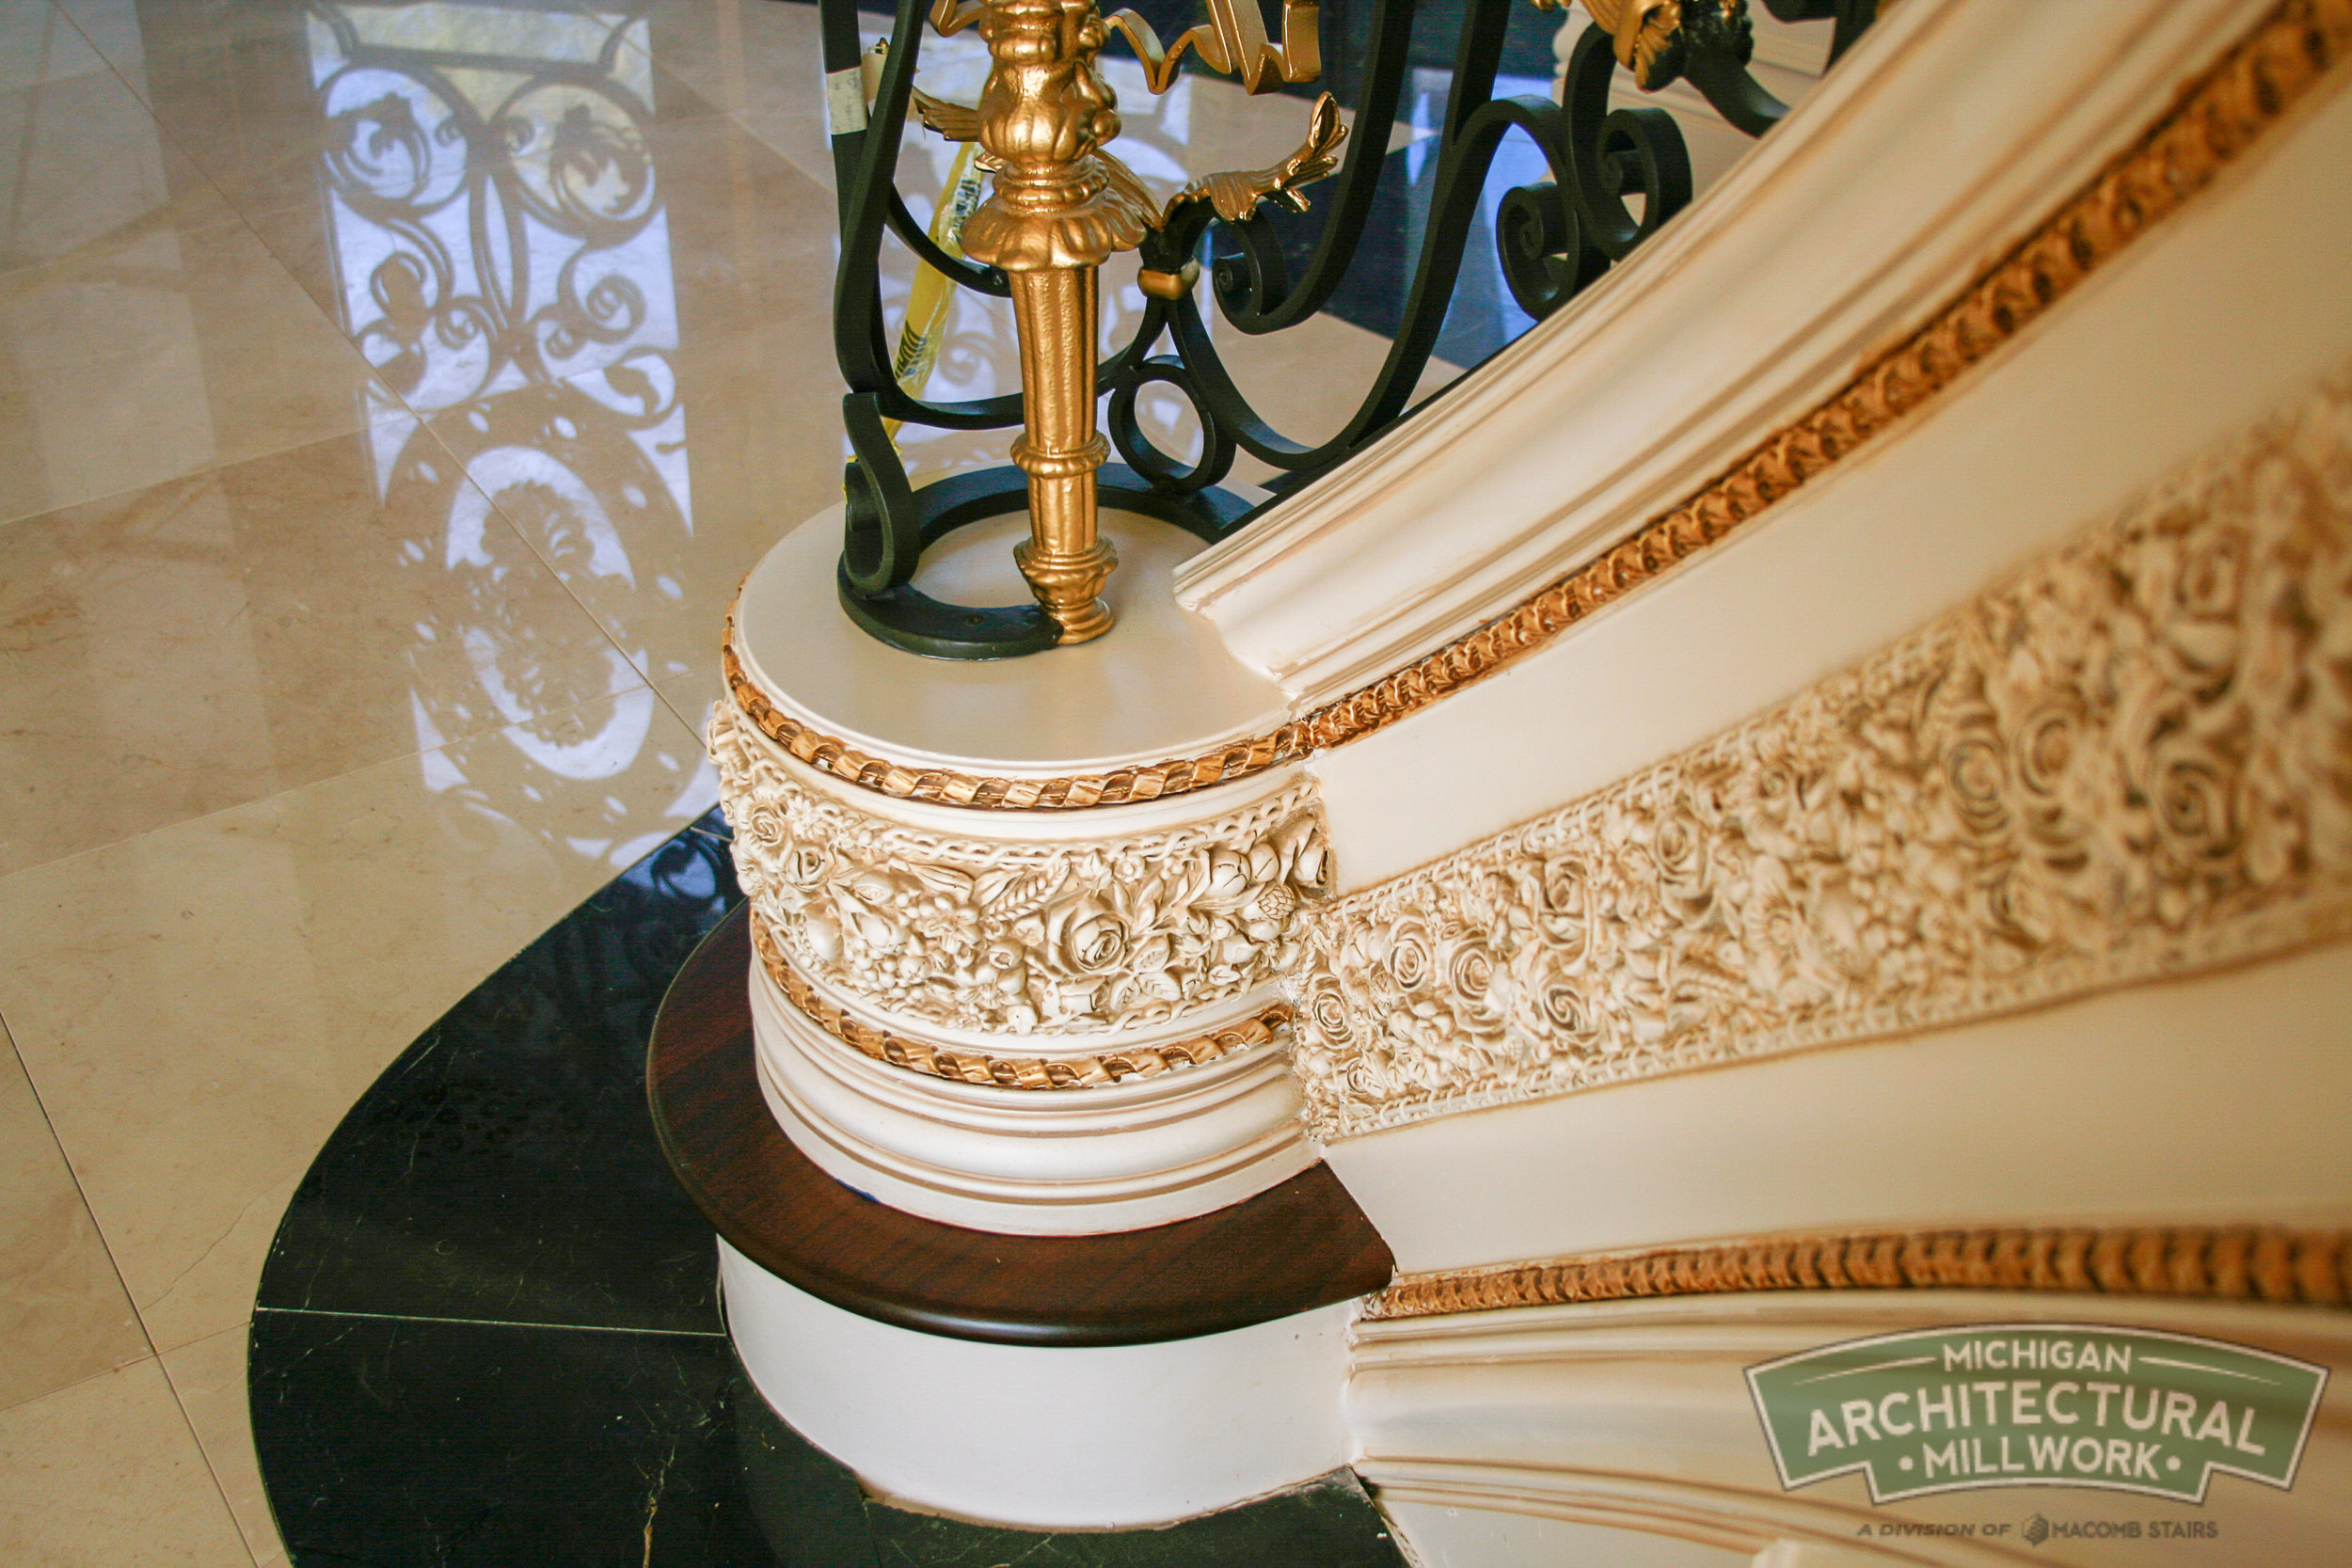 Michigan Architectural Millwork- Moulding and Millwork Photo-124.jpg